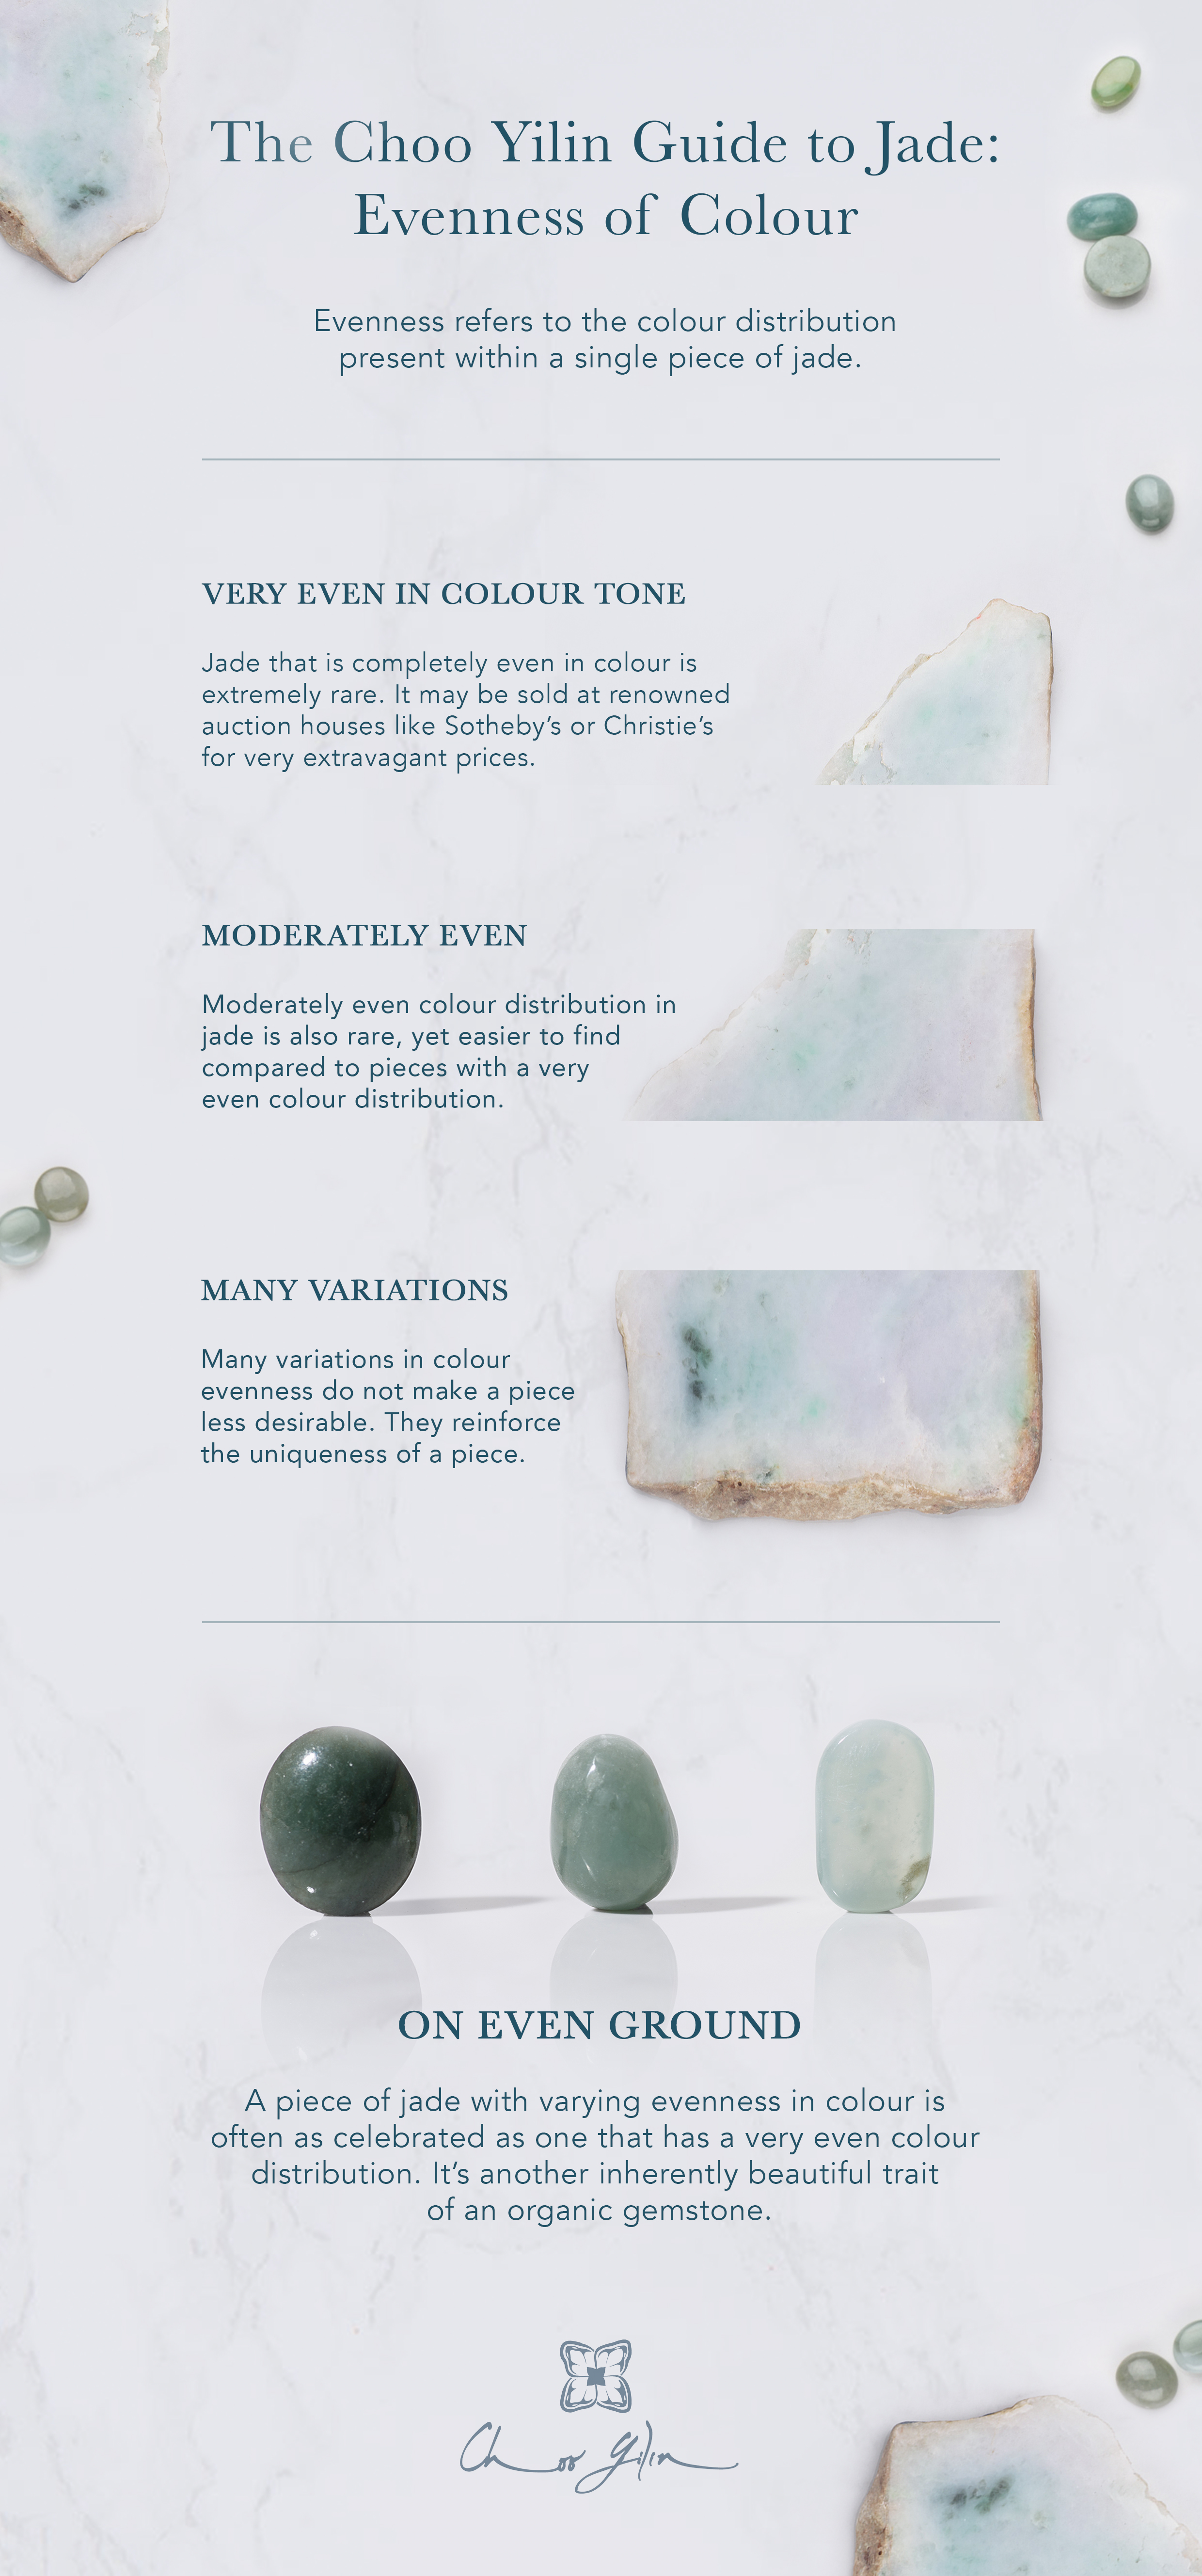 The Choo Yilin Guide to Jade: Evenness of Colour Evenness refers to the colour distribution present within a single piece of jade. VERY EVEN IN COLOUR TONE Jade that is completely even in colour is extremely rare. It may be sold at renowned auction houses like Sotheby's or Christie's for very extravagant prices. MODERATELY EVEN Moderately even colour distribution in jade is also rare, yet easier to find compared to pieces with a very even colour distribution. MANY VARIATIONS Many variations in colour evenness do not make a piece less desirable. They reinforce the uniqueness of a piece. ON EVEN GROUND A piece of jade with varying evenness in colour is often as celebrated as one that has a very even colour distribution. It's another inherently beautiful trait of an organic gemstone.